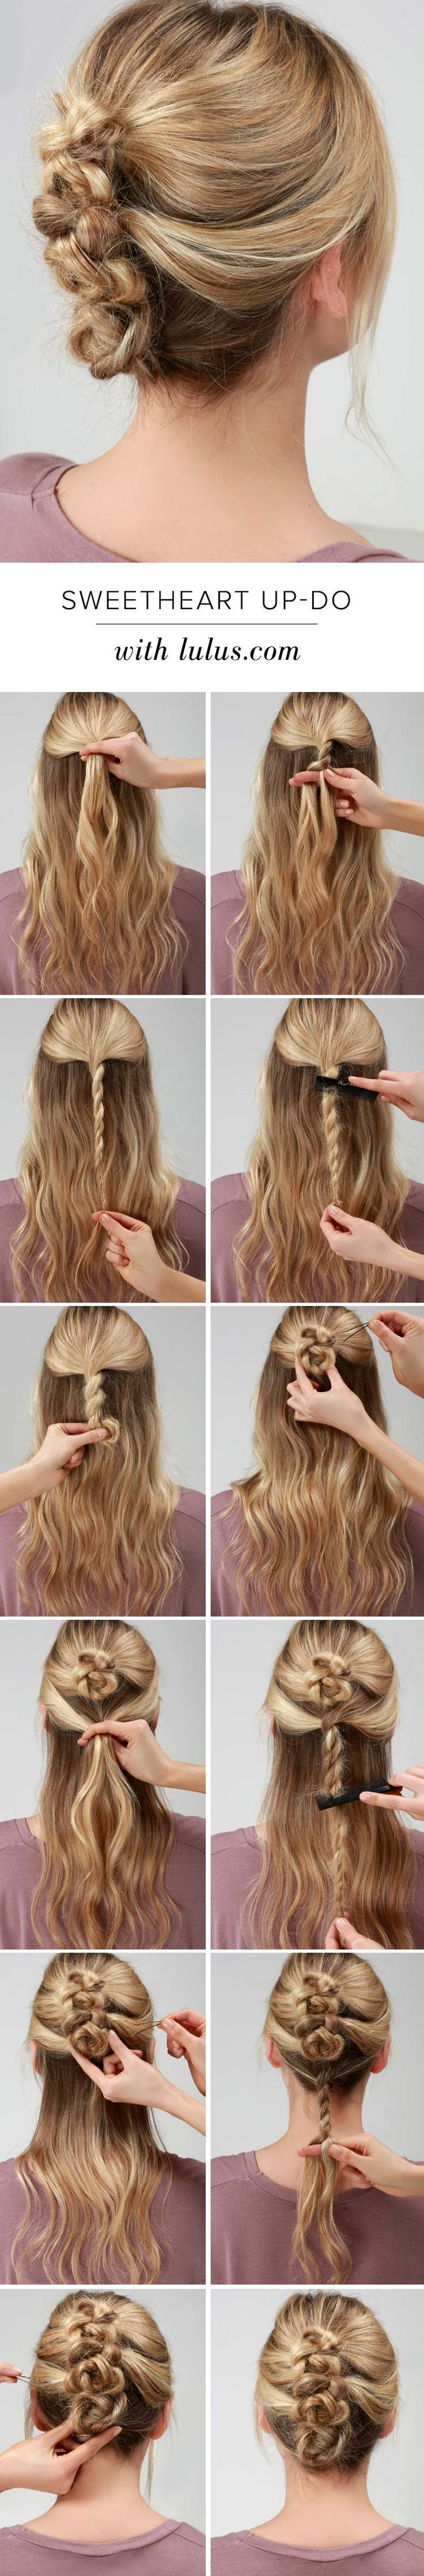 nice LuLu*s How-To: Sweetheart Twisted Up-Do by http://www.dana-haircuts.xyz/hair-tutorials/lulus-how-to-sweetheart-twisted-up-do/